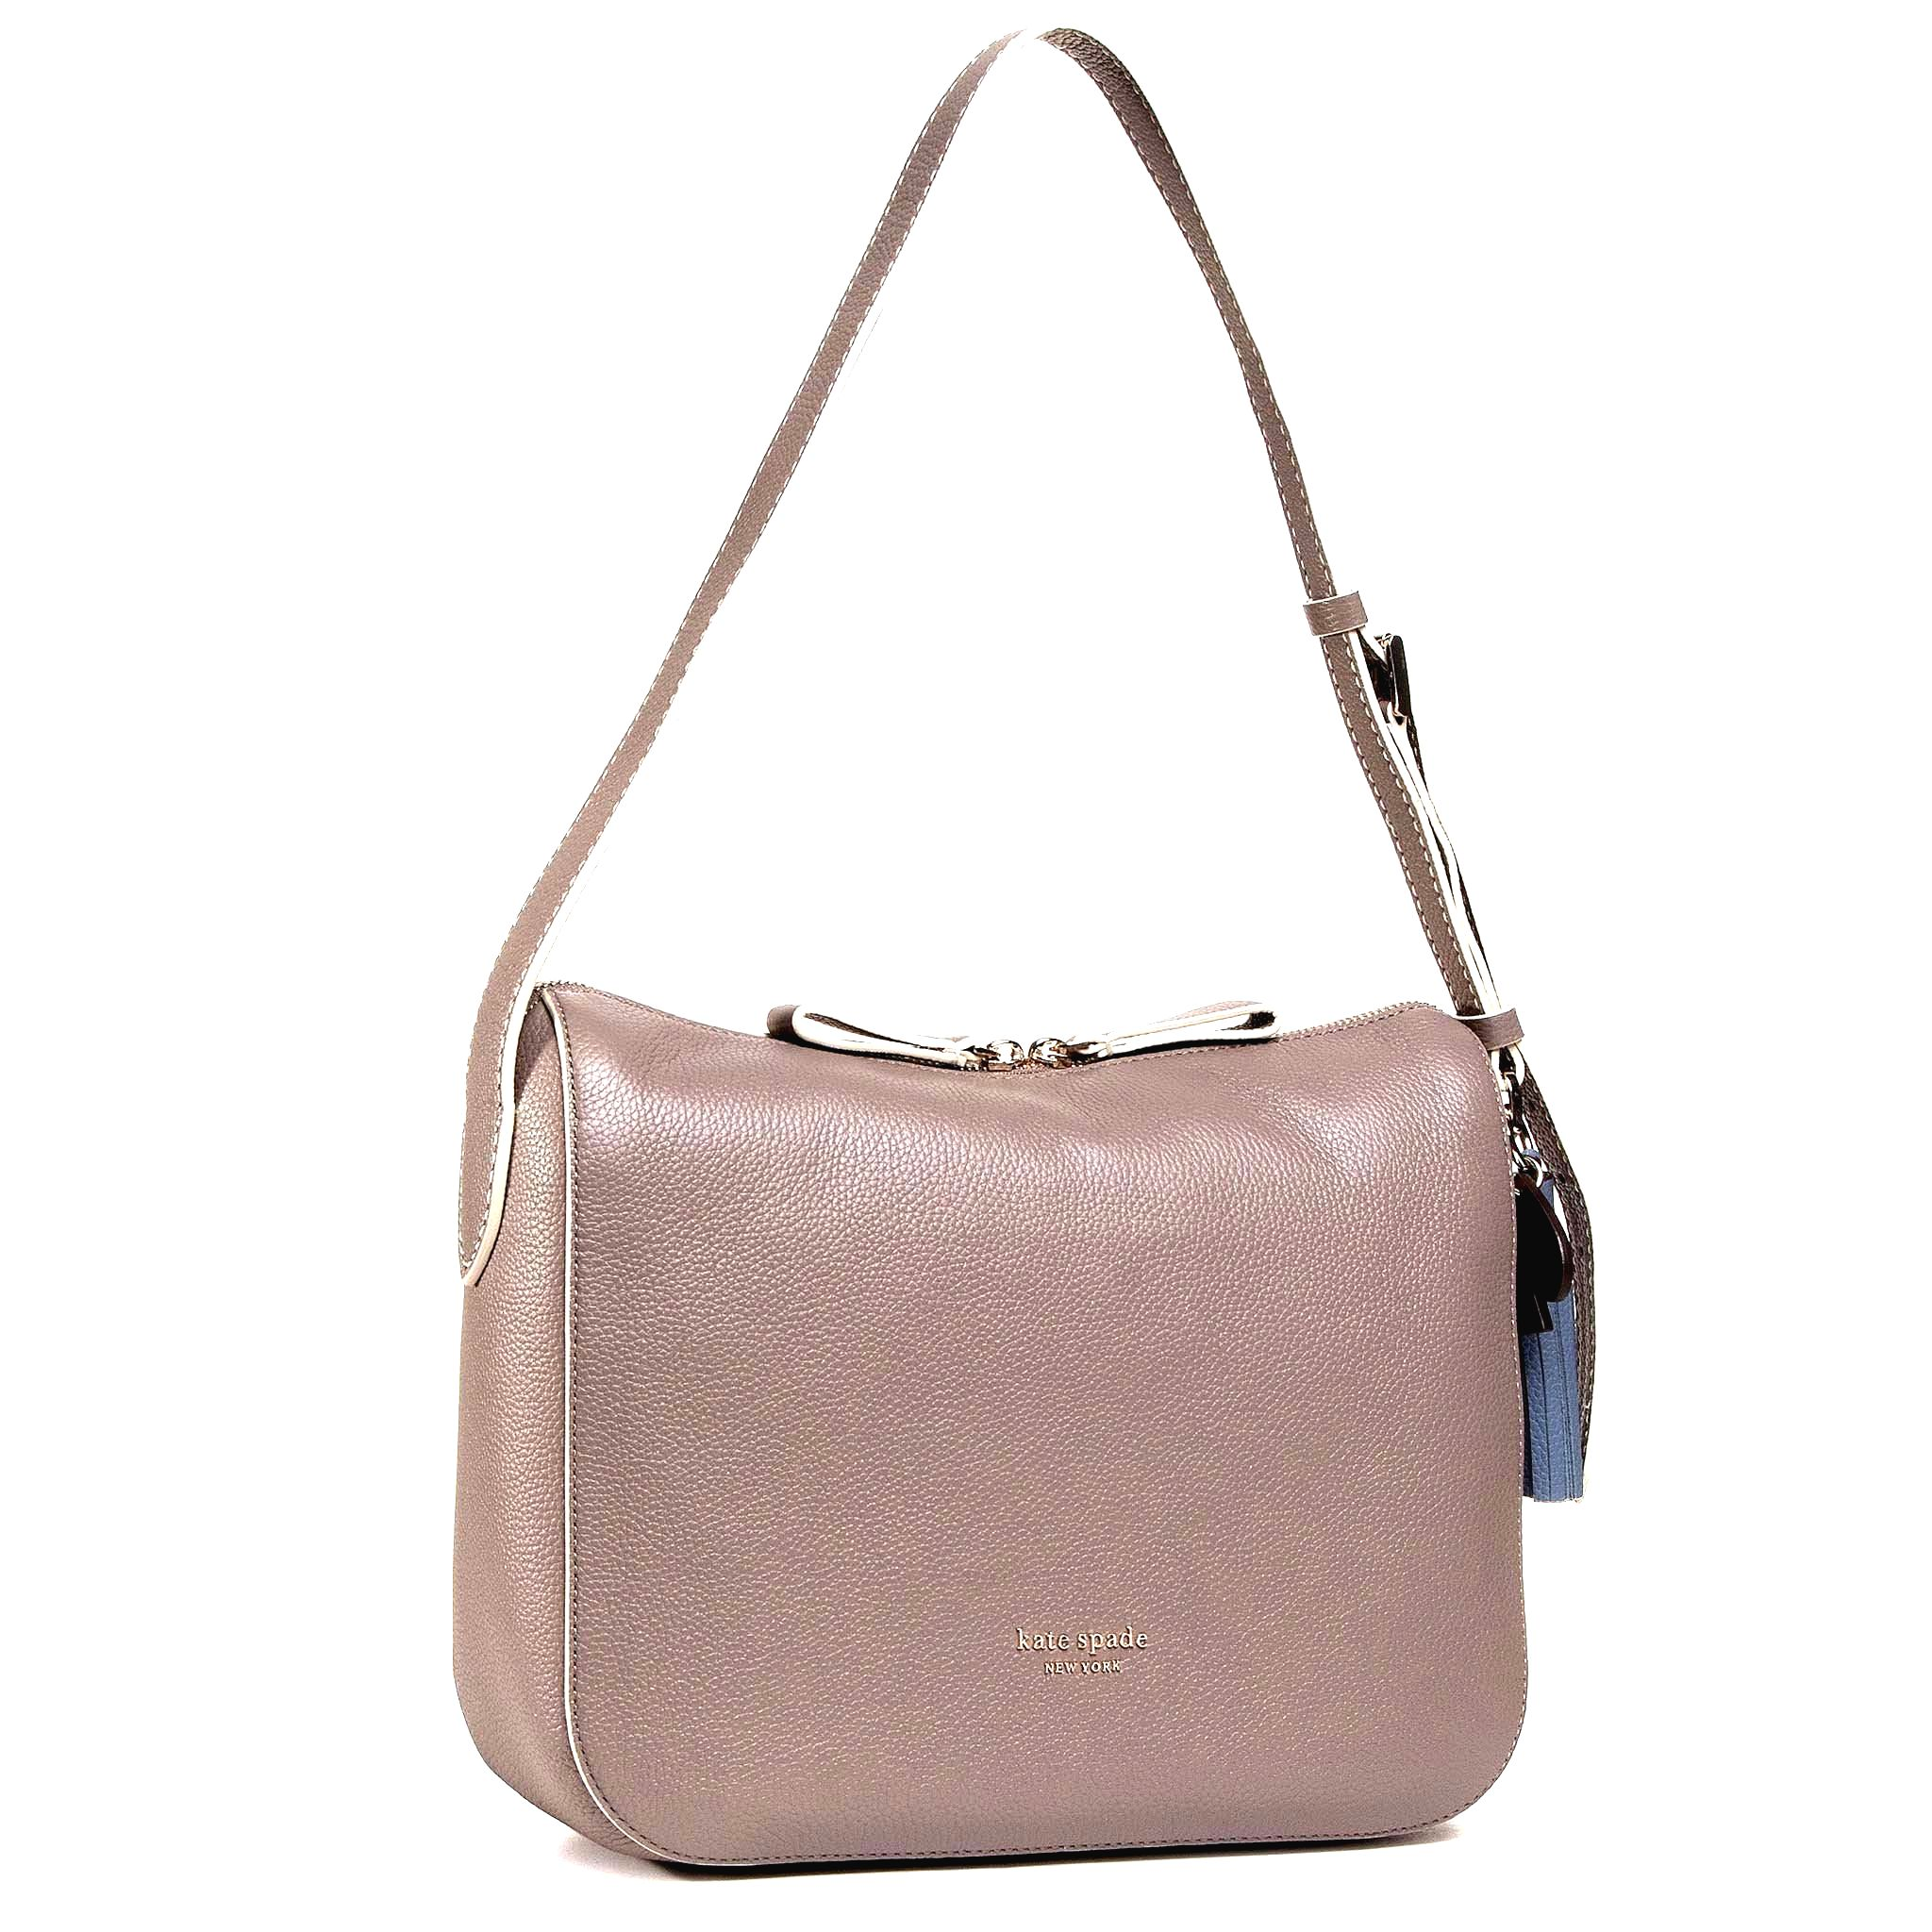 Kabelka KATE SPADE - Medium Shoulder PXR00248  Mineral Grey Multi 060U